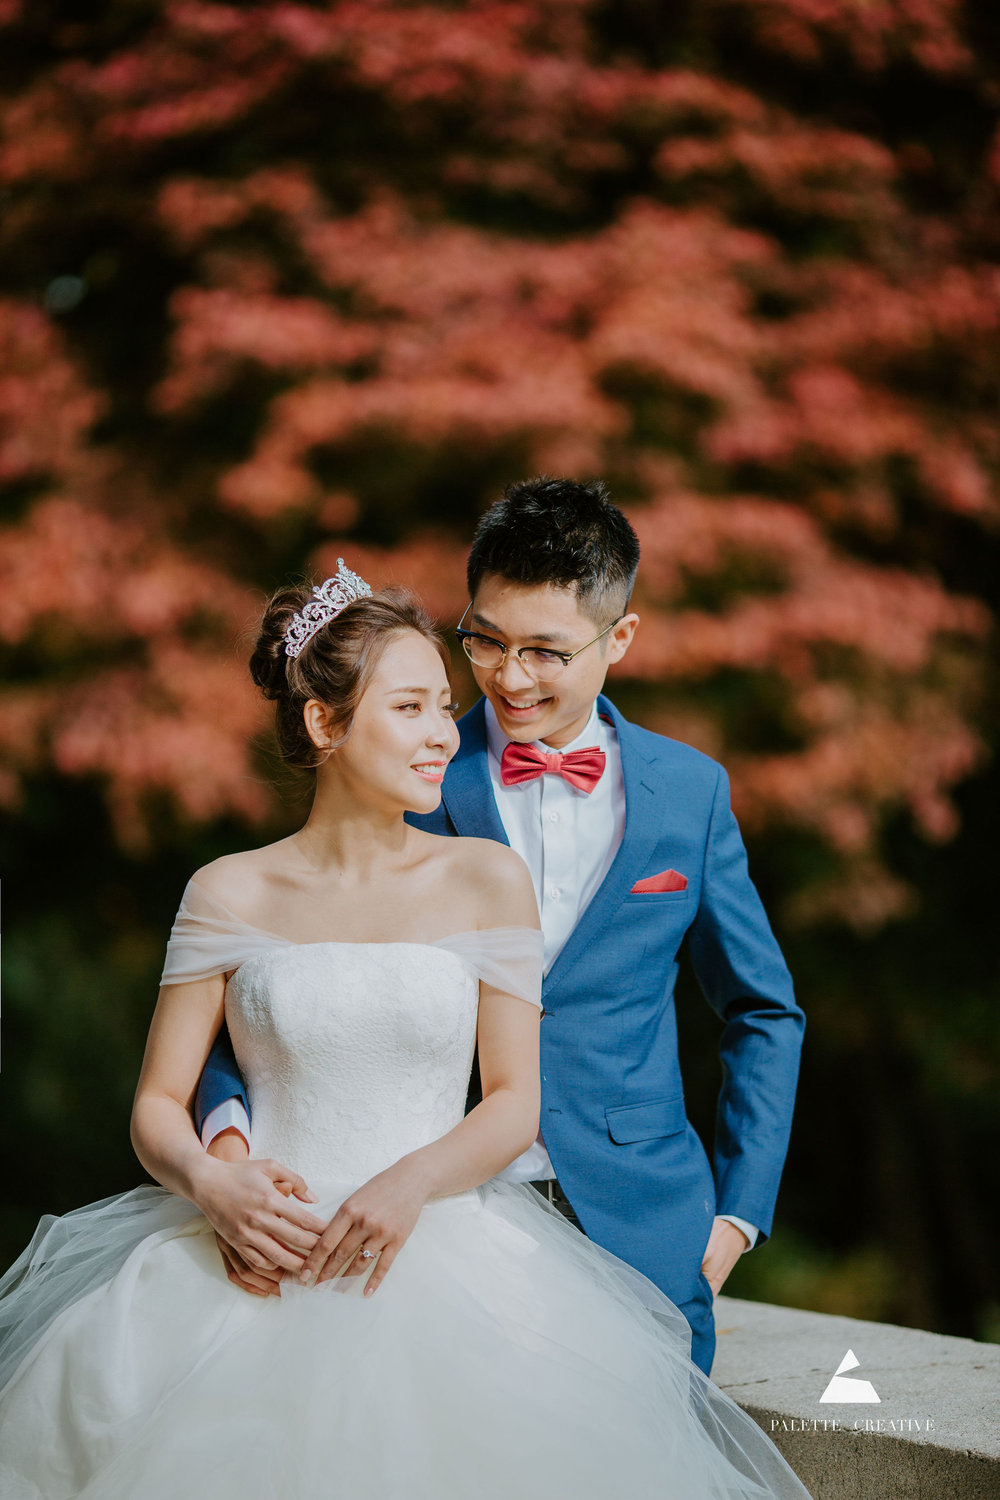 Ying&Adam-WeddingDay-HL-HD-50.JPG